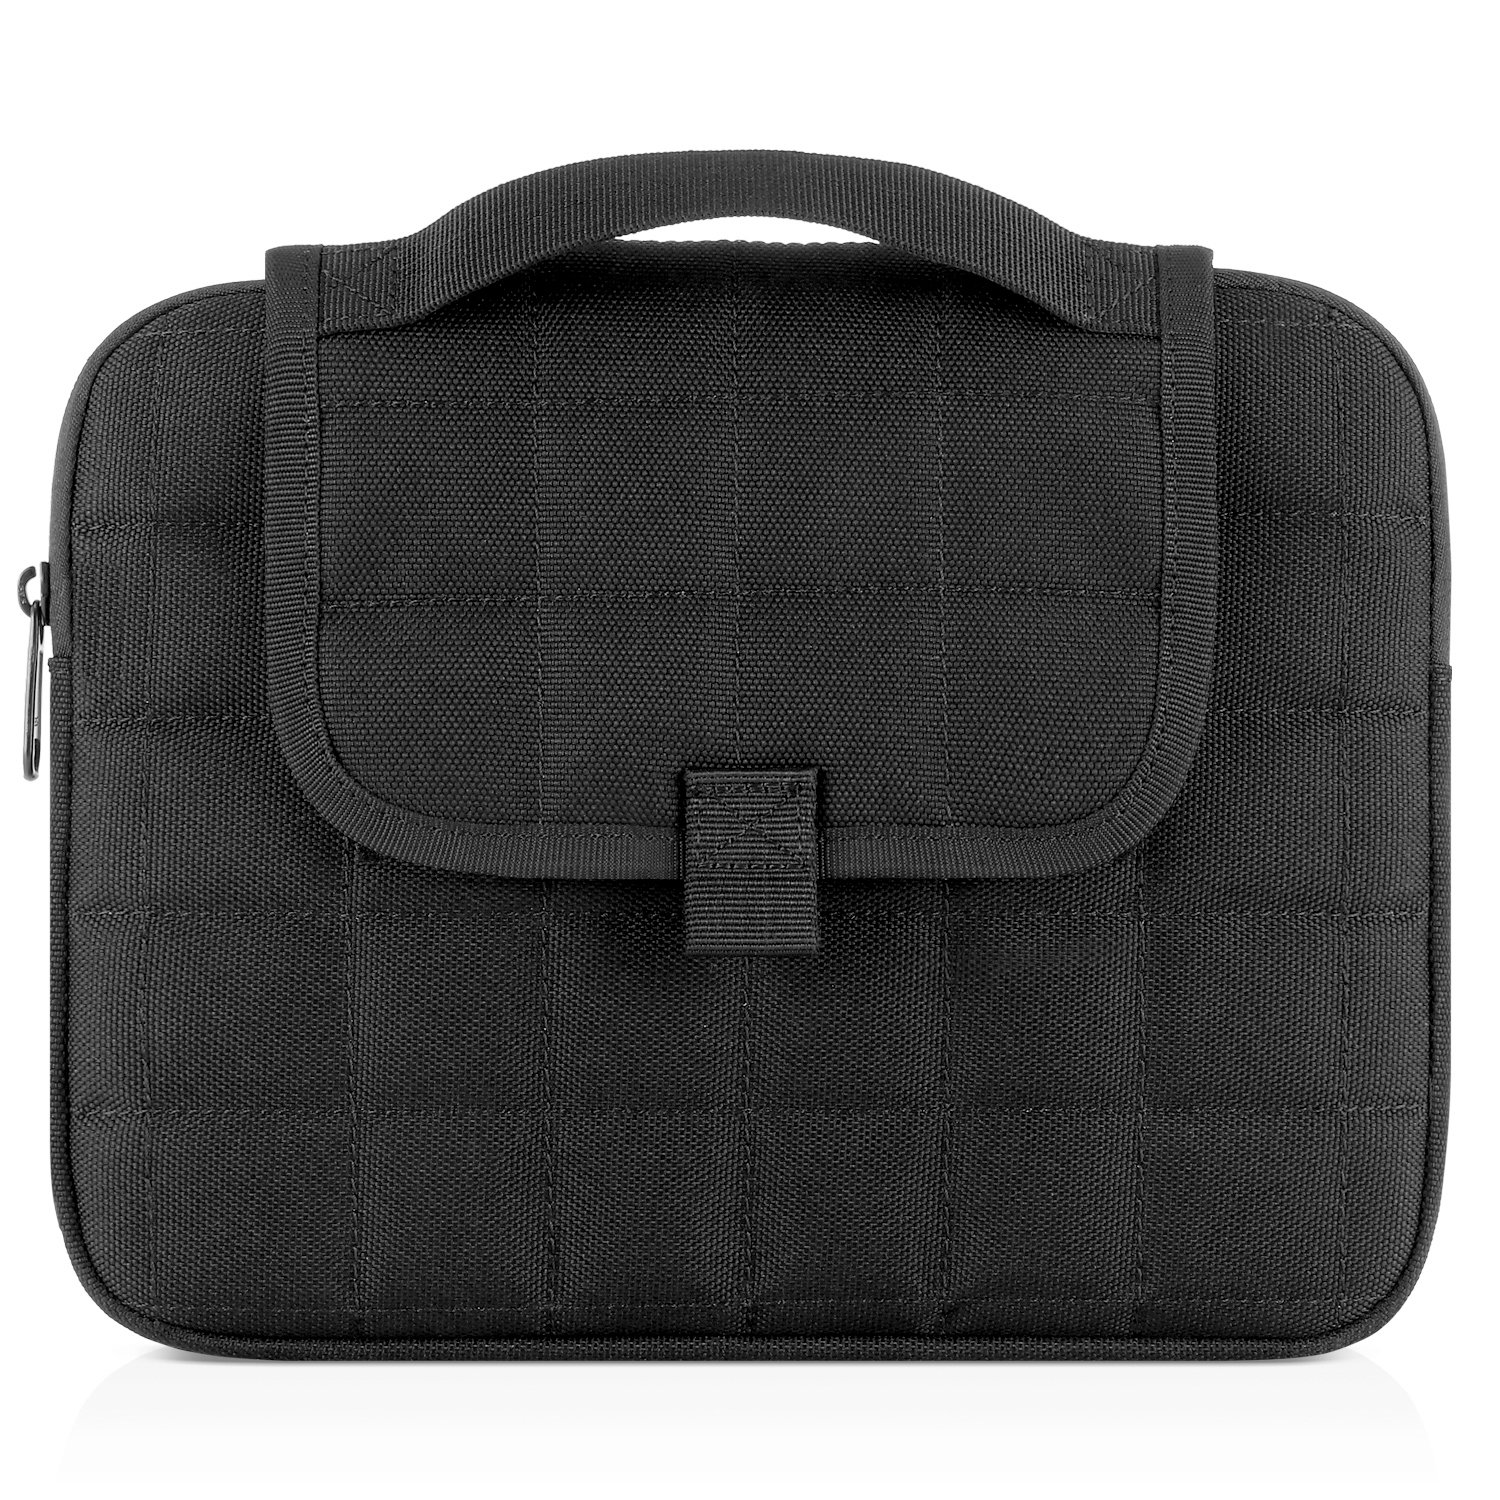 Barbarians Molle Tablet Case, IPad Air and Netbook Bag with Handle Fits 7 to 10-Inch Tablets